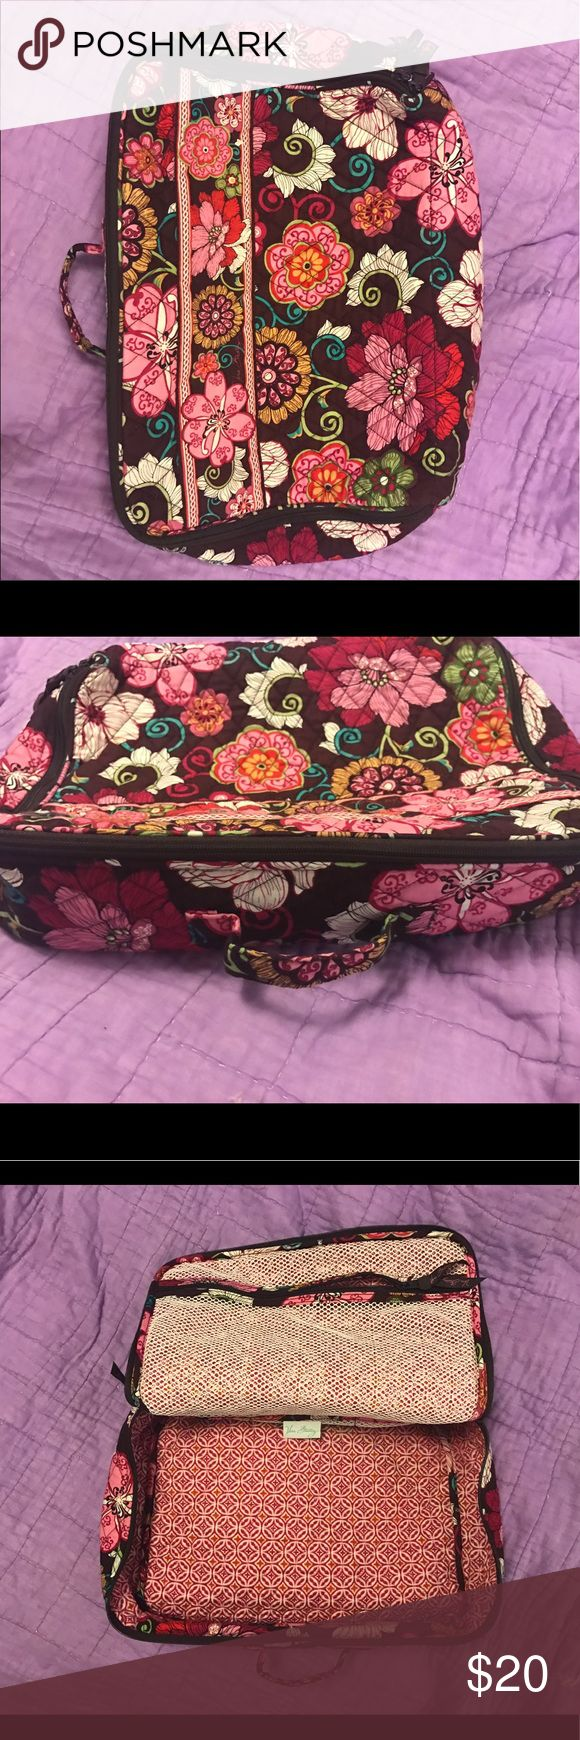 Vera Bradley Travel Bag This is a Vera Bradley travel zip bag. It has a lot of room, I used it for school. Handle on the side, zipper all the way around and a small zip pouch inside. Used, but great condition. Vera Bradley Bags Cosmetic Bags & Cases